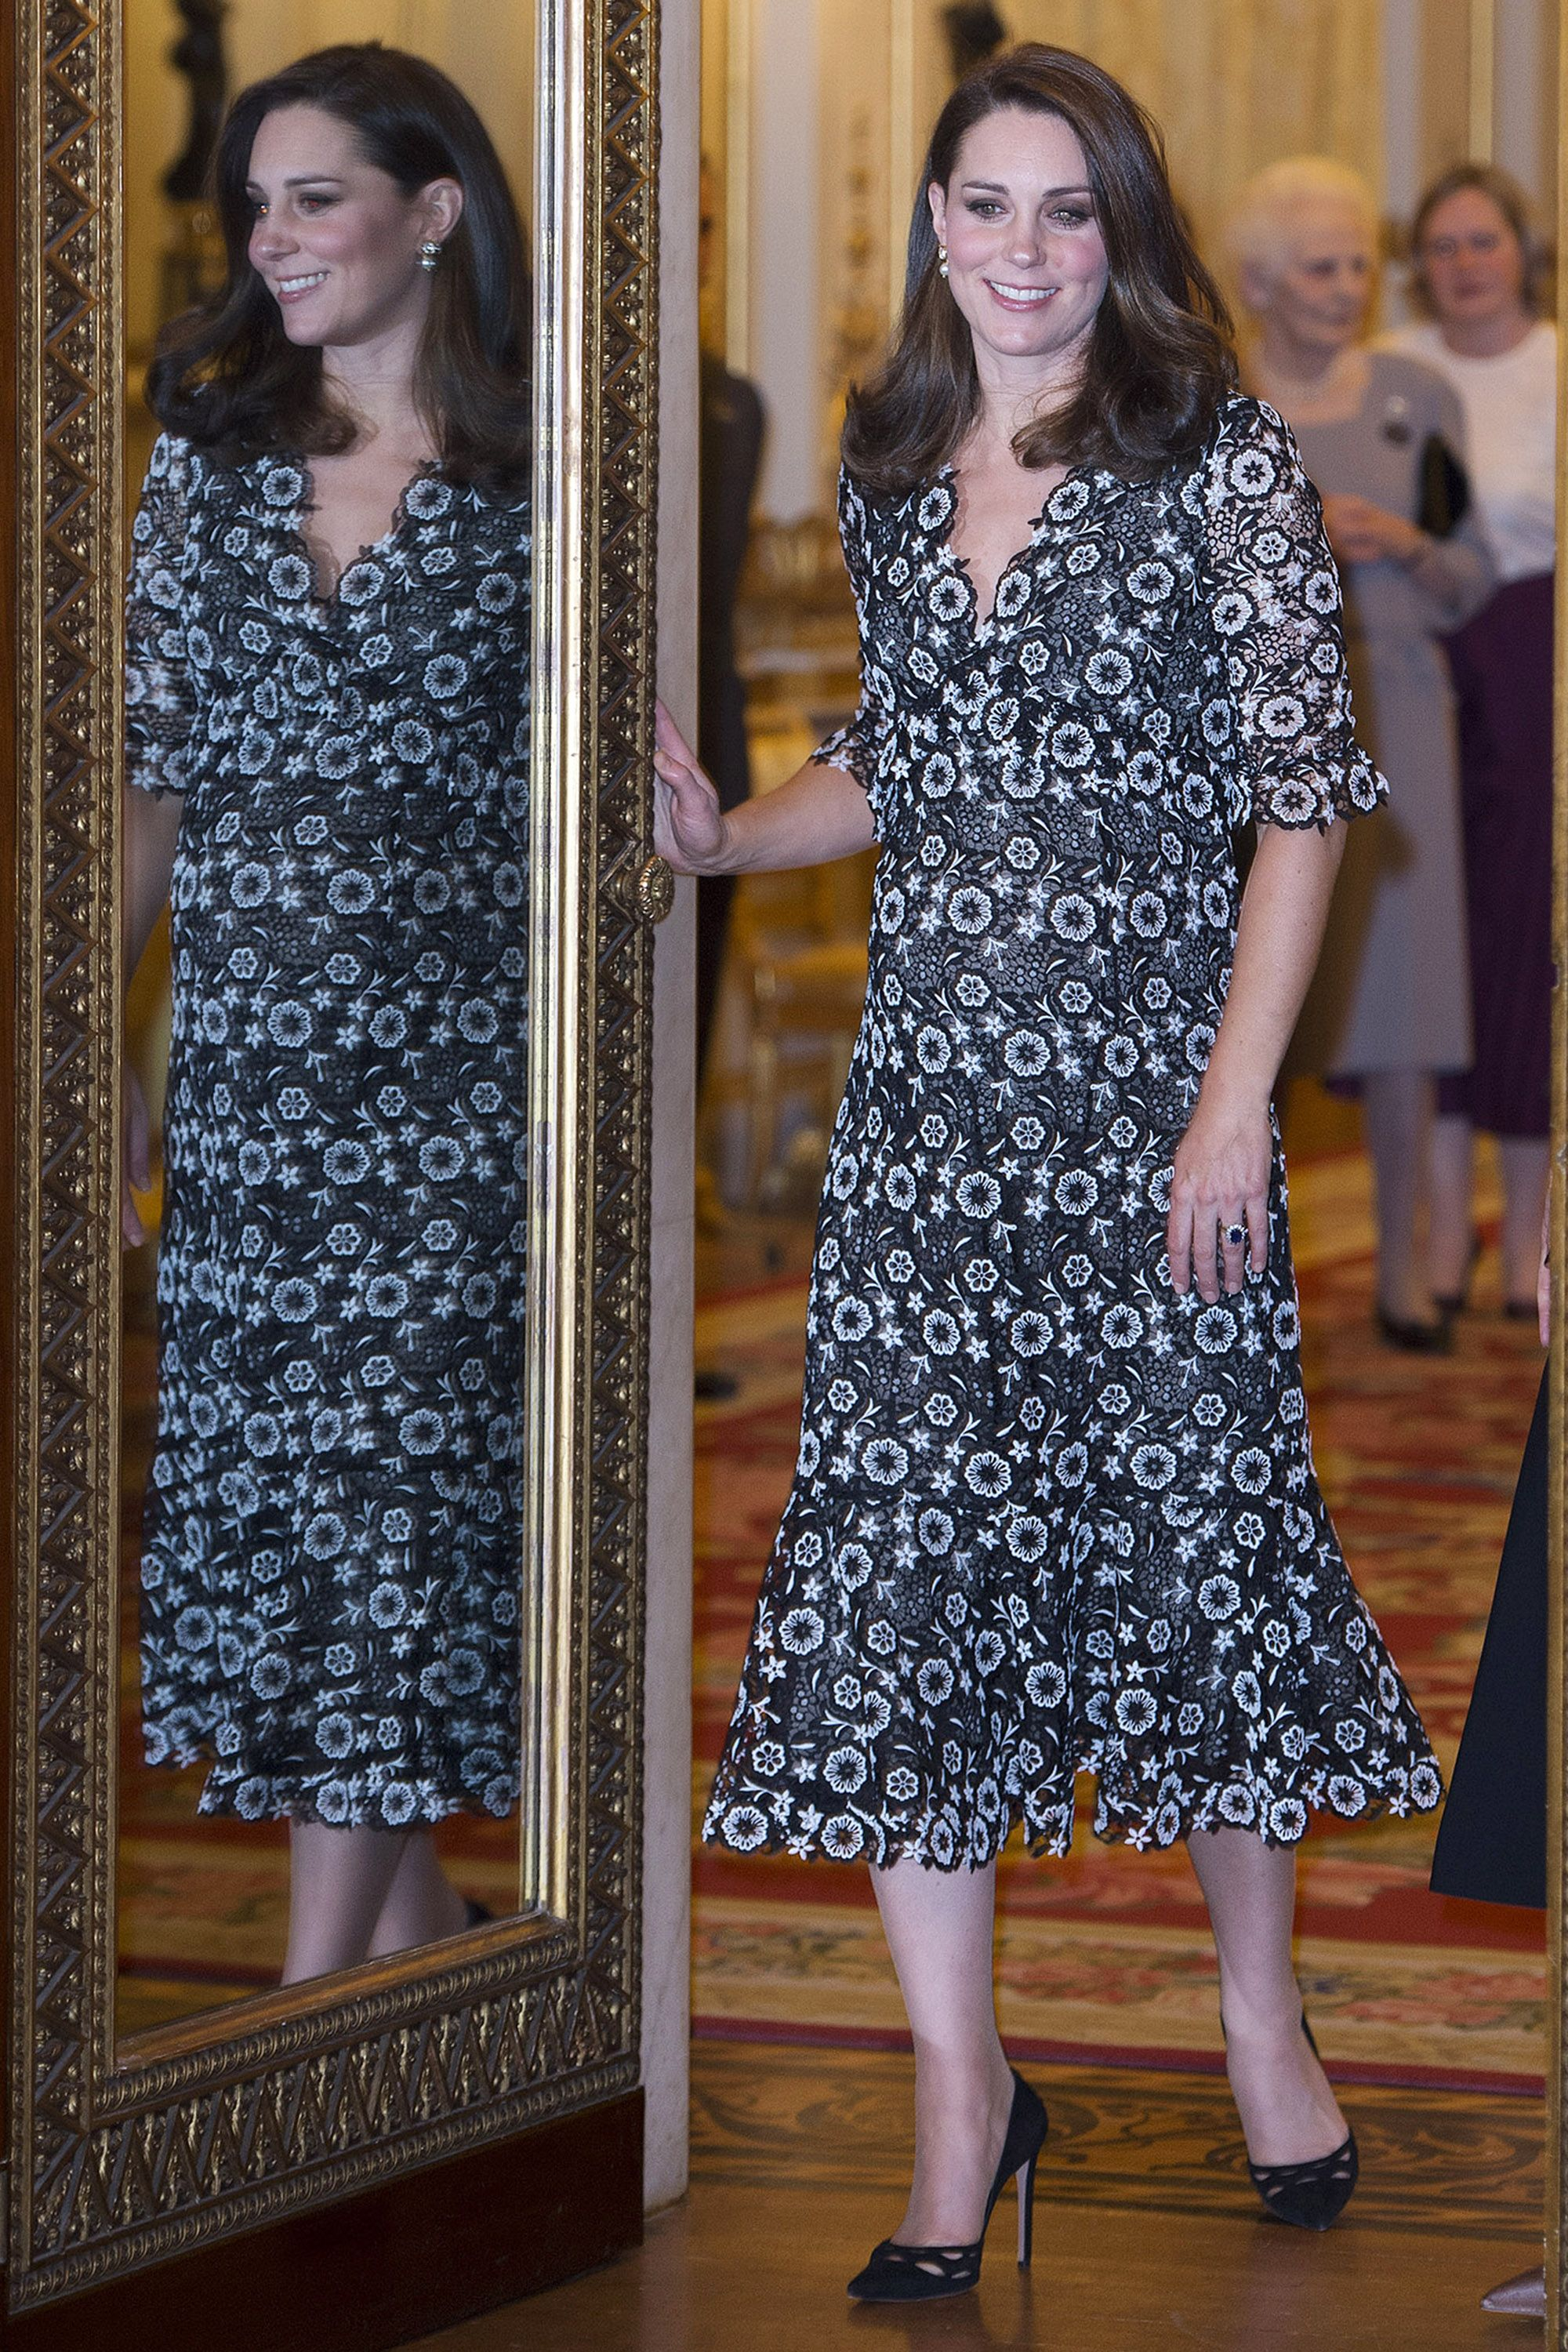 5c3f3296f82 Kate Middleton s Best Style Moments - The Duchess of Cambridge s Most Fashionable  Outfits